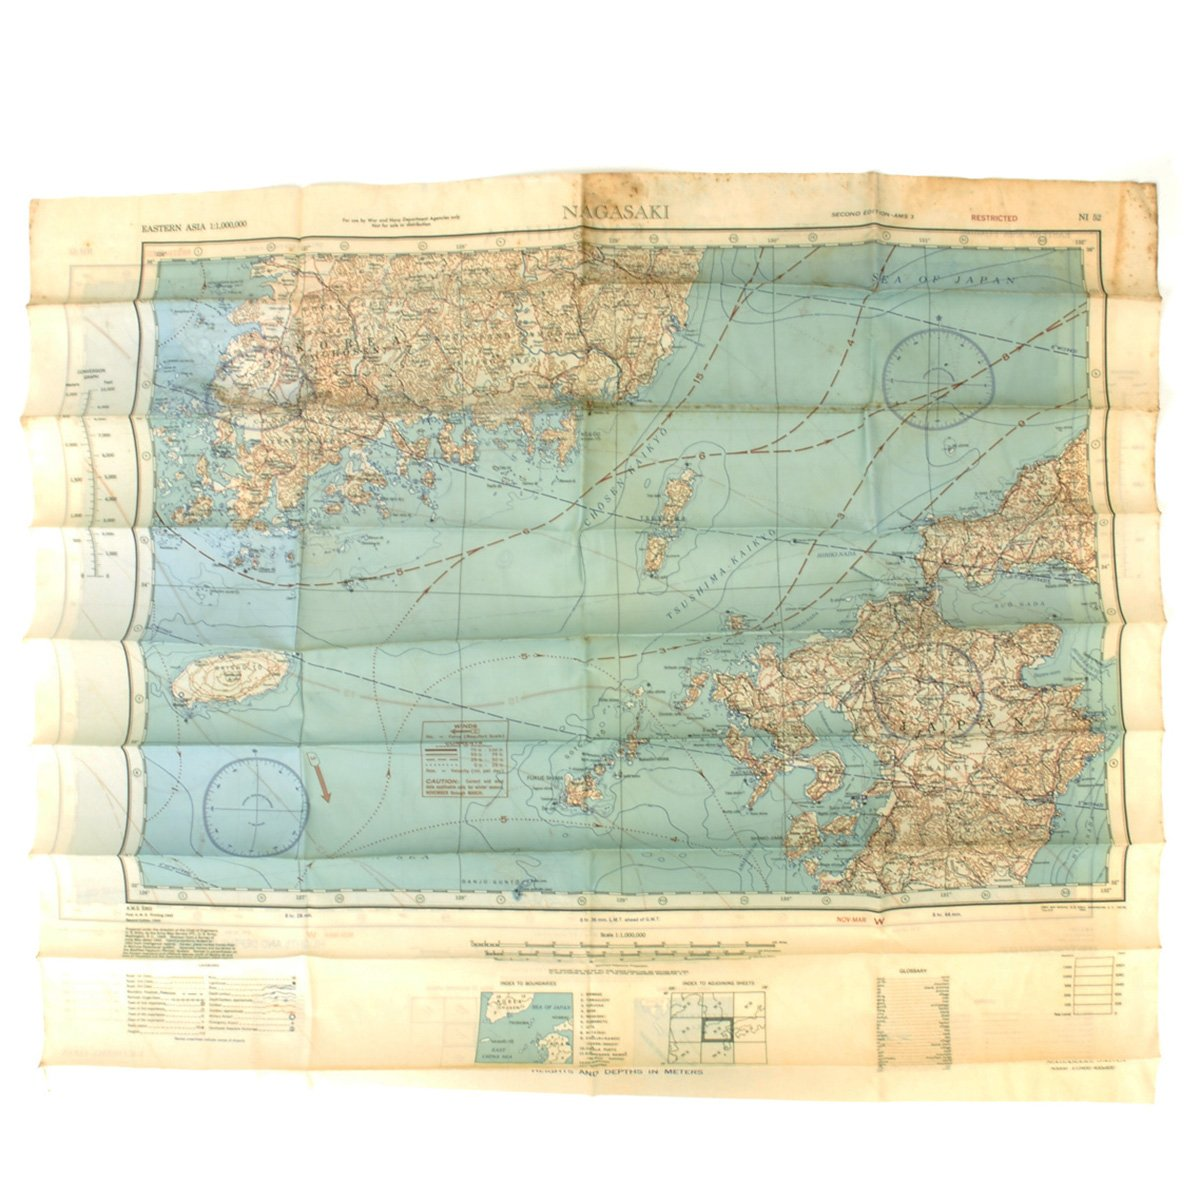 Nagasaki On World Map.Original U S Wwii Army Air Forces Silk Escape Map Nagasaki And